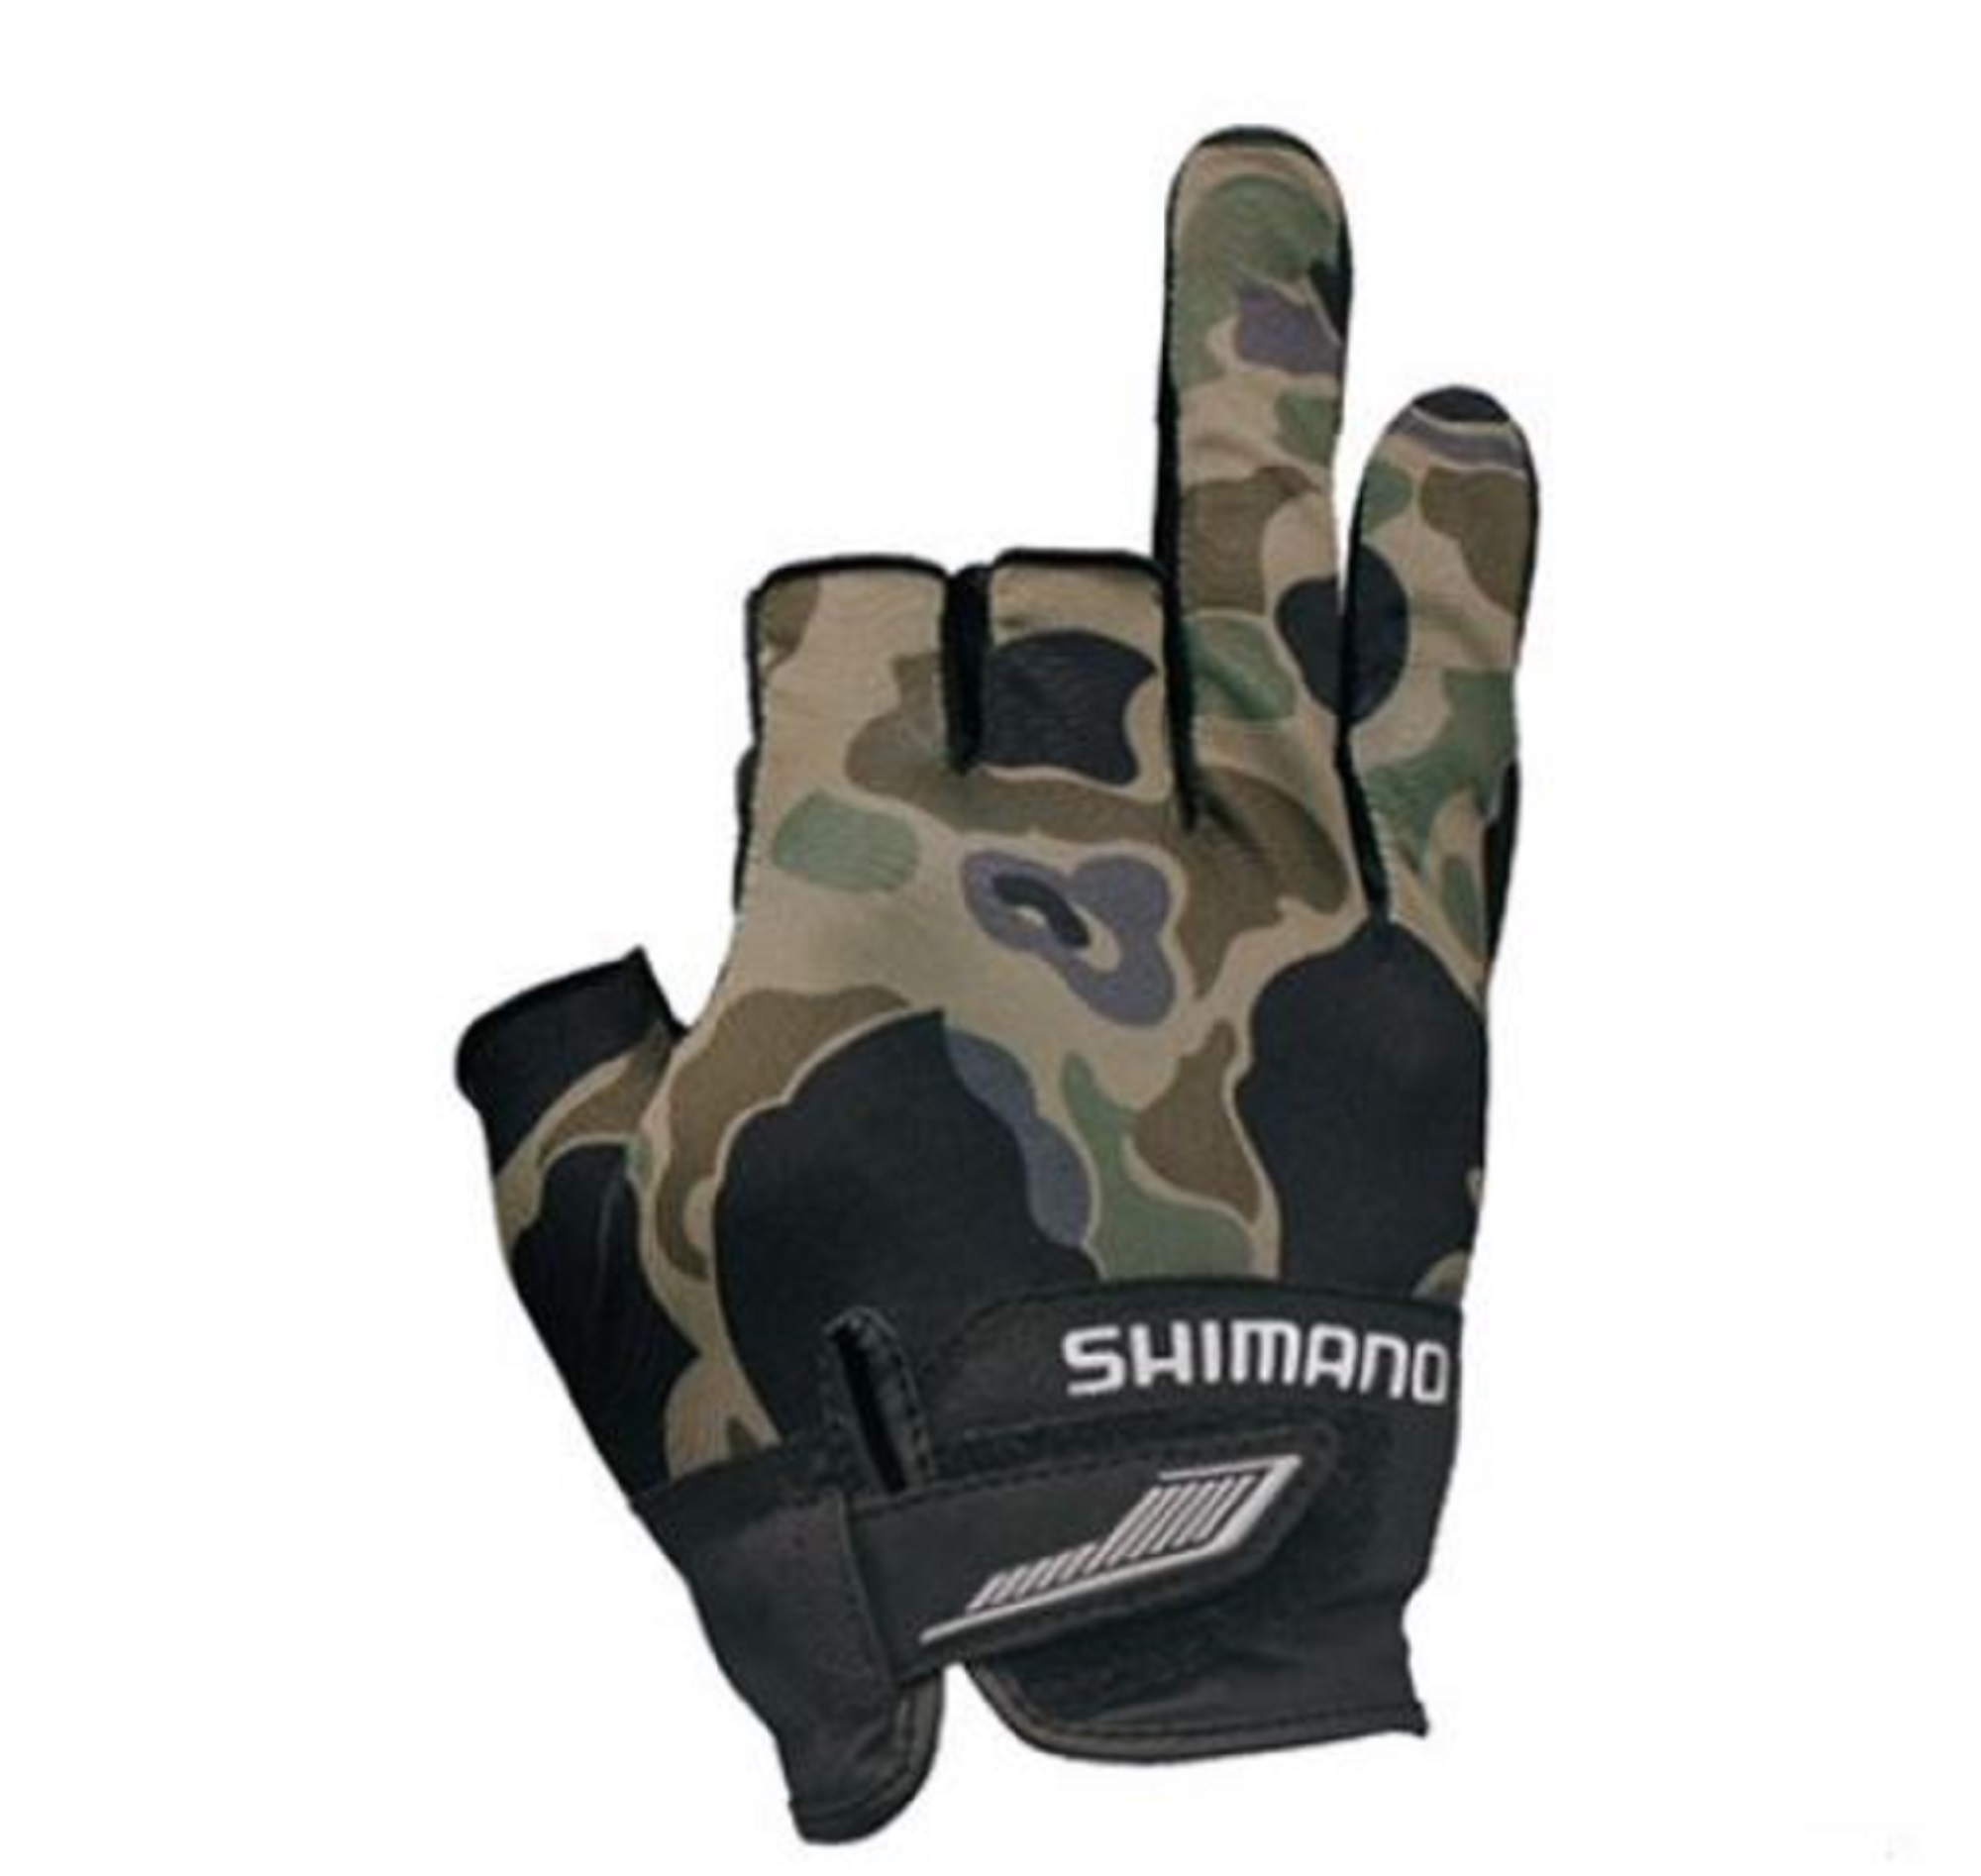 Shimano GL-021S Gloves 3D Casting 3 Fingerless Camou Size XL 669438